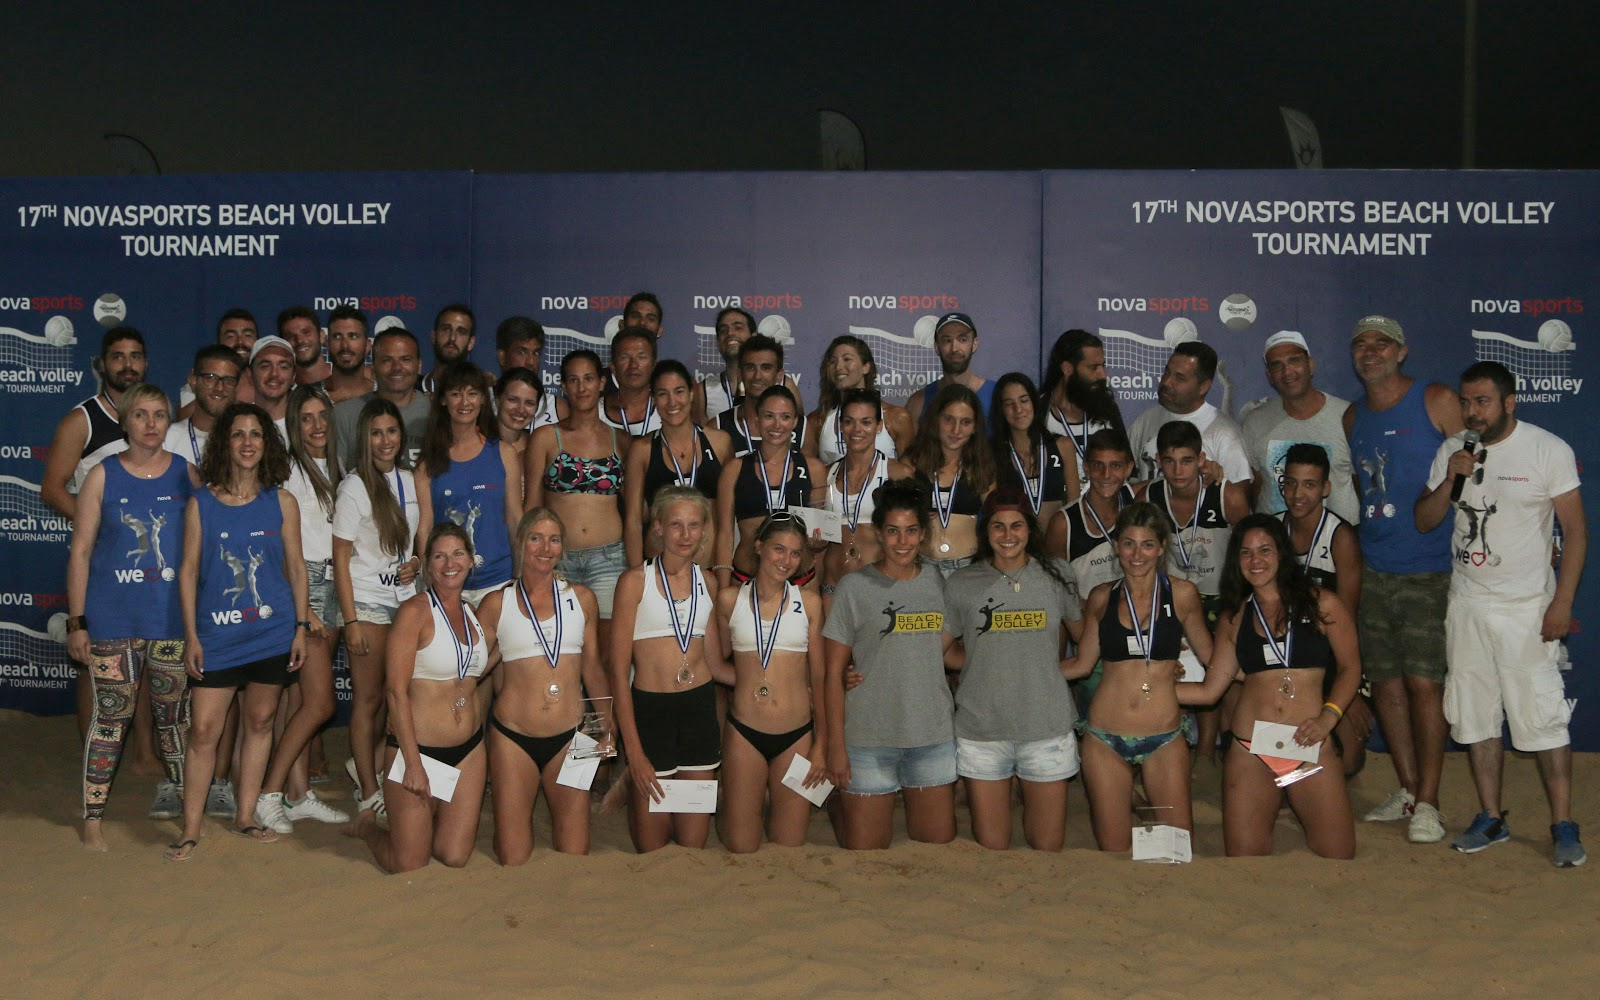 17th Novasports Beach Volley Tournament 2016